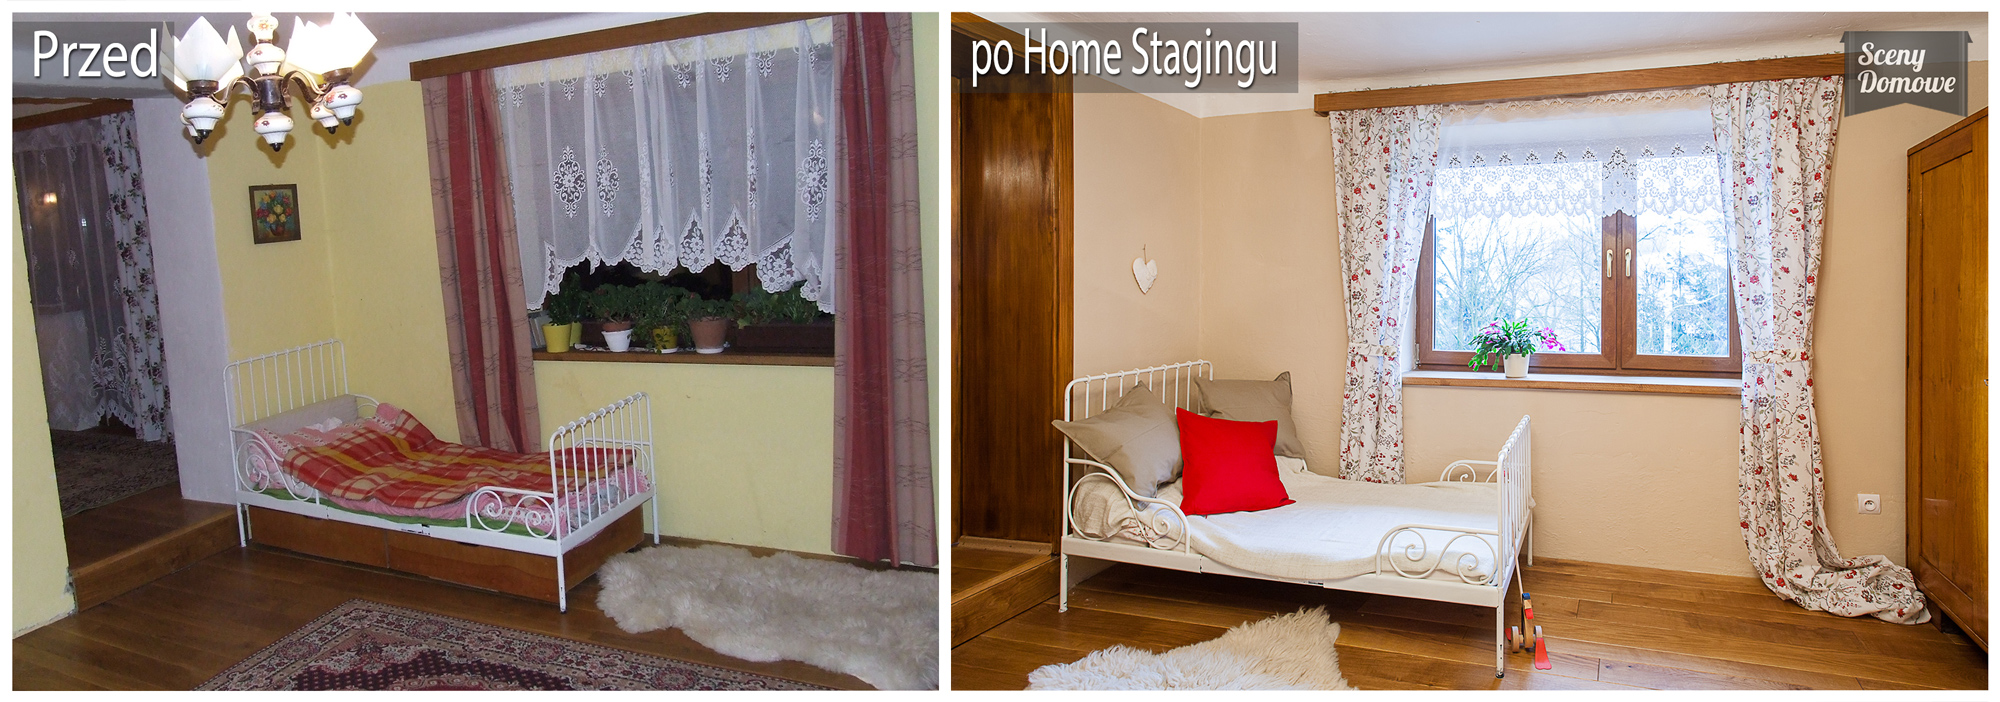 home staging domu